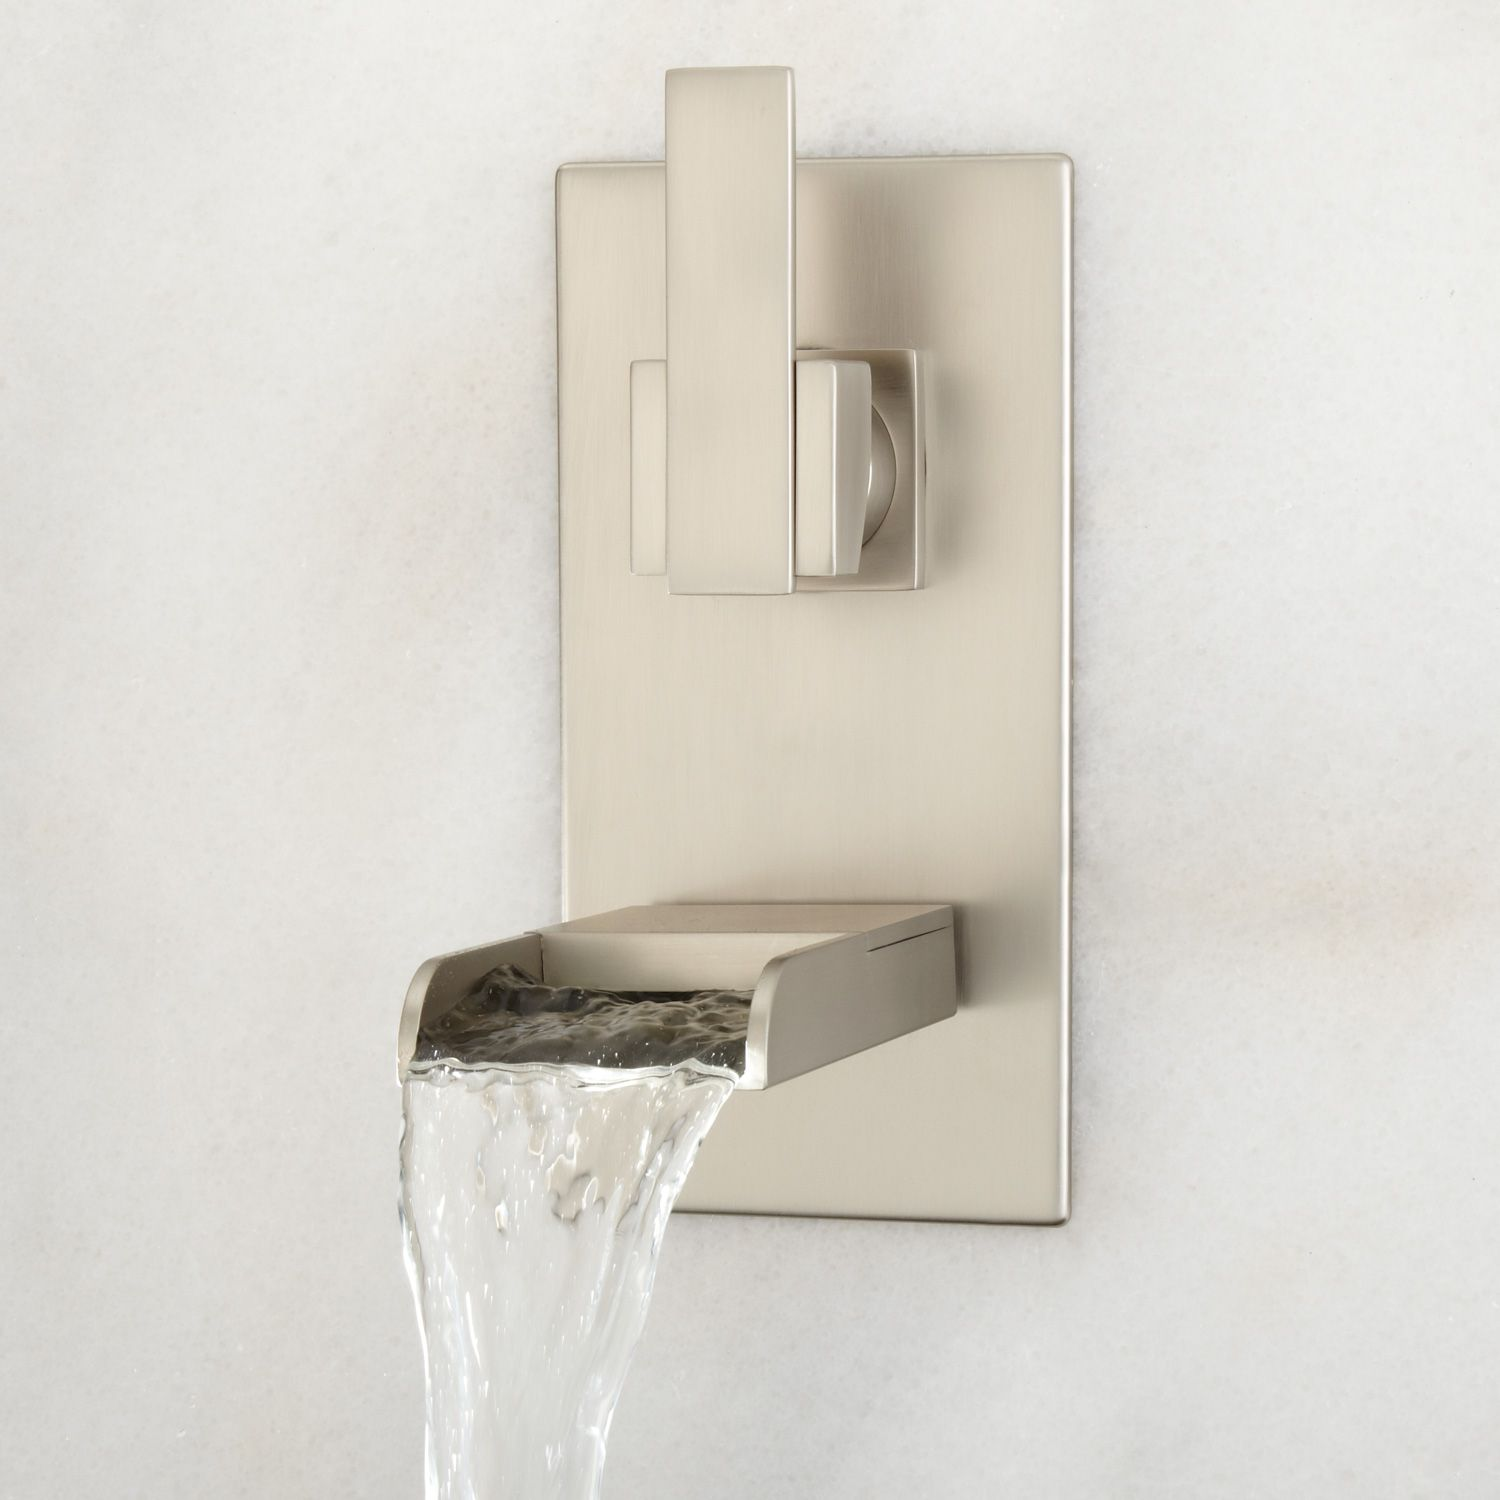 Willis Wall Mount Bathroom Waterfall Faucet Waterfall Faucet Wall Mount And Brushed Nickel